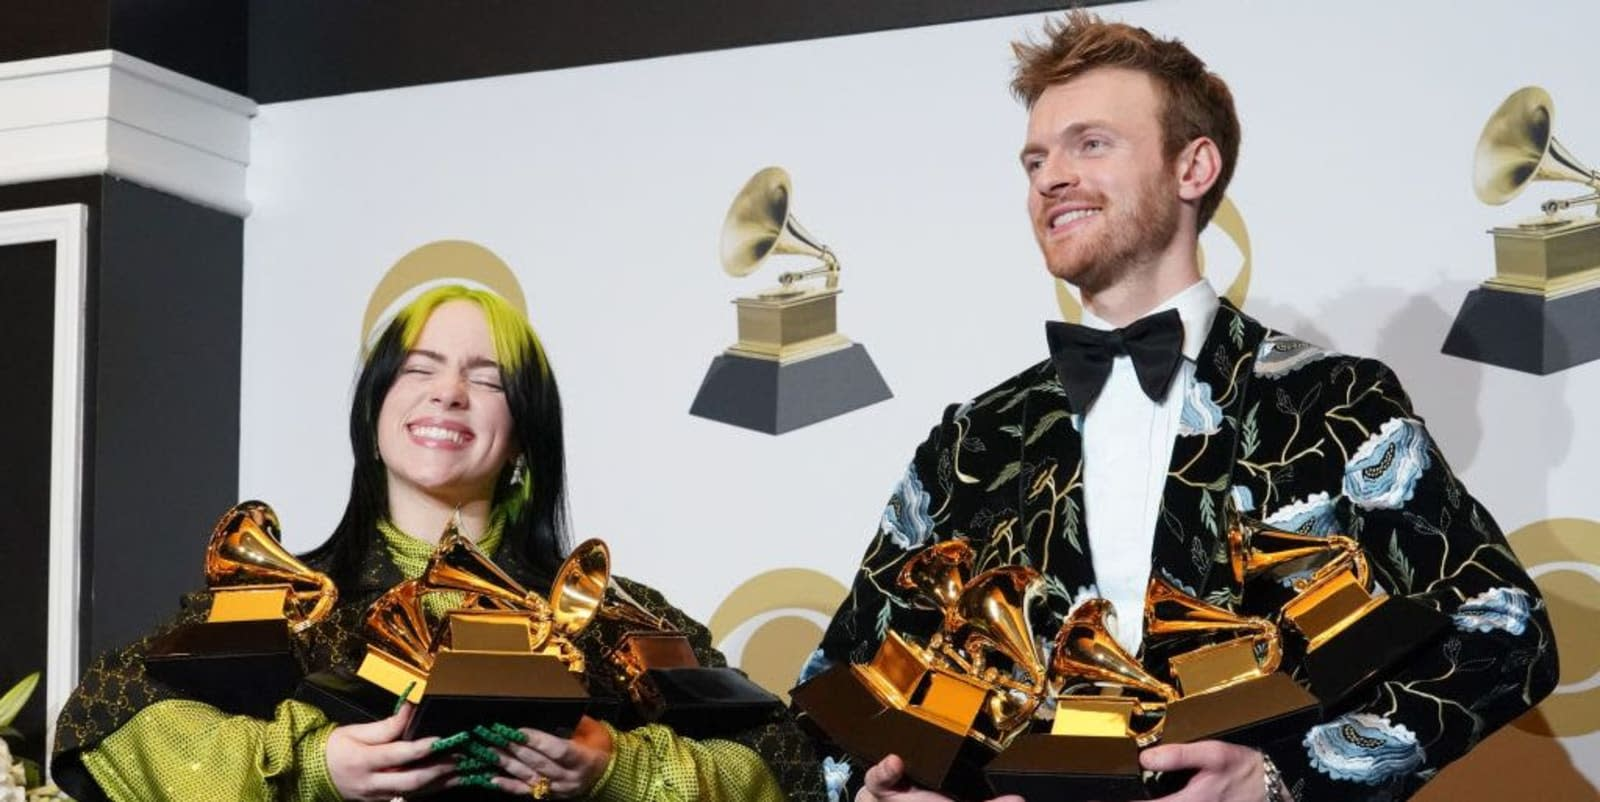 Billie Eilish and Finneas O'Connell Talked Awards, Fans, and What's Next Right After They Swept the Grammys